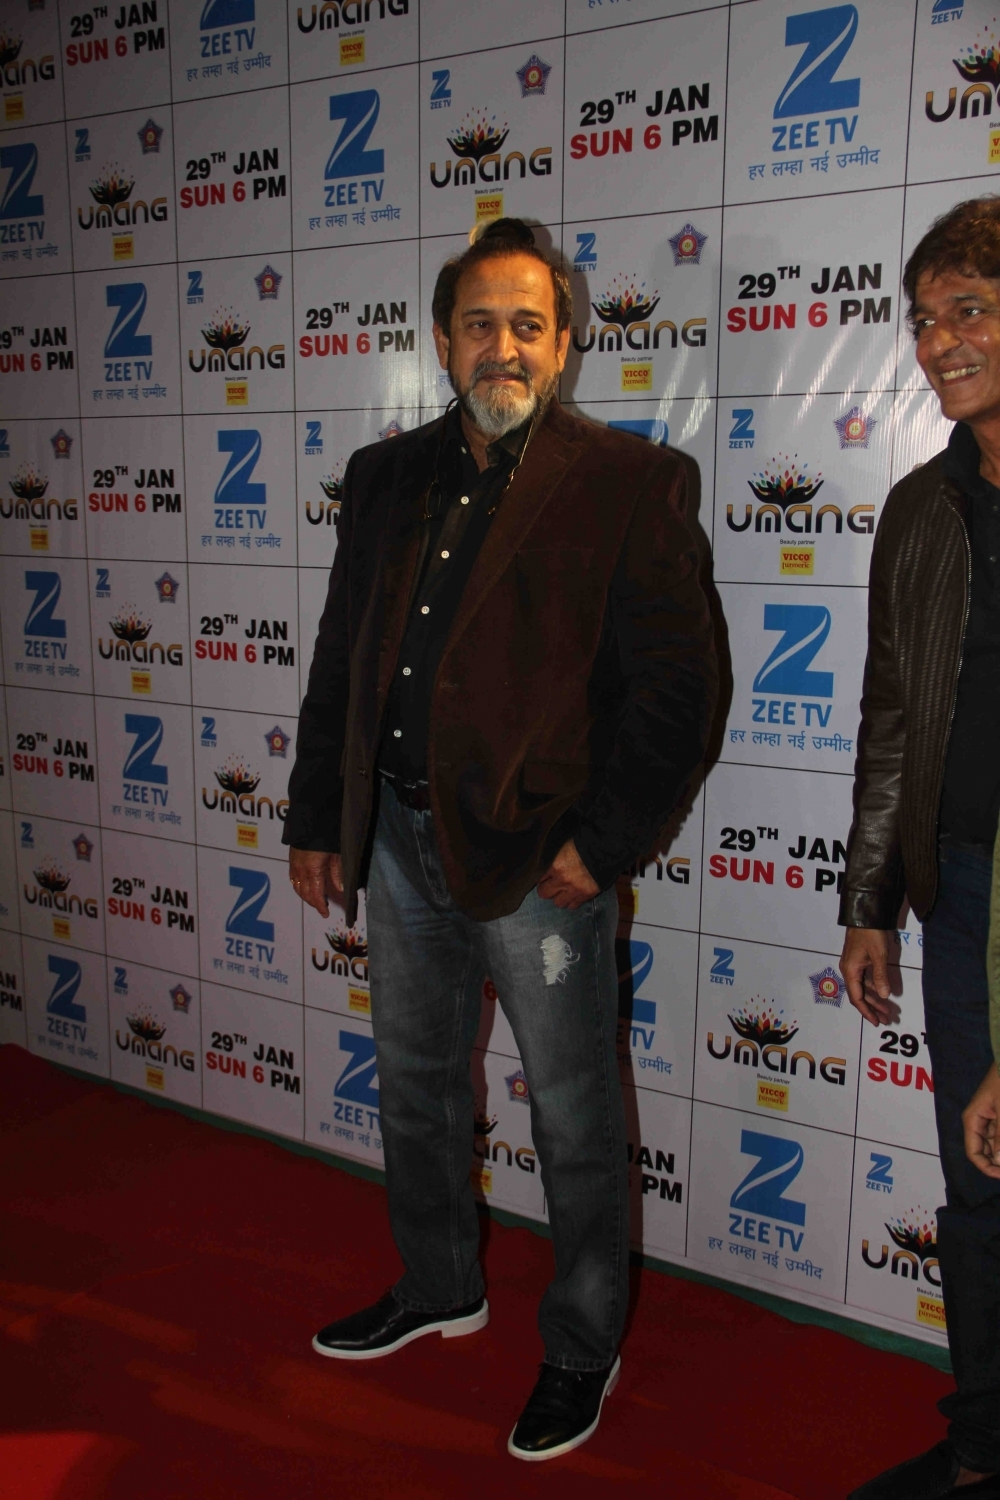 Mumbai: Actor Mahesh Manjrekar during the Umang Mumbai Police Show 2017 in Mumbai on Jan 22, 2017. (Photo: IANS)